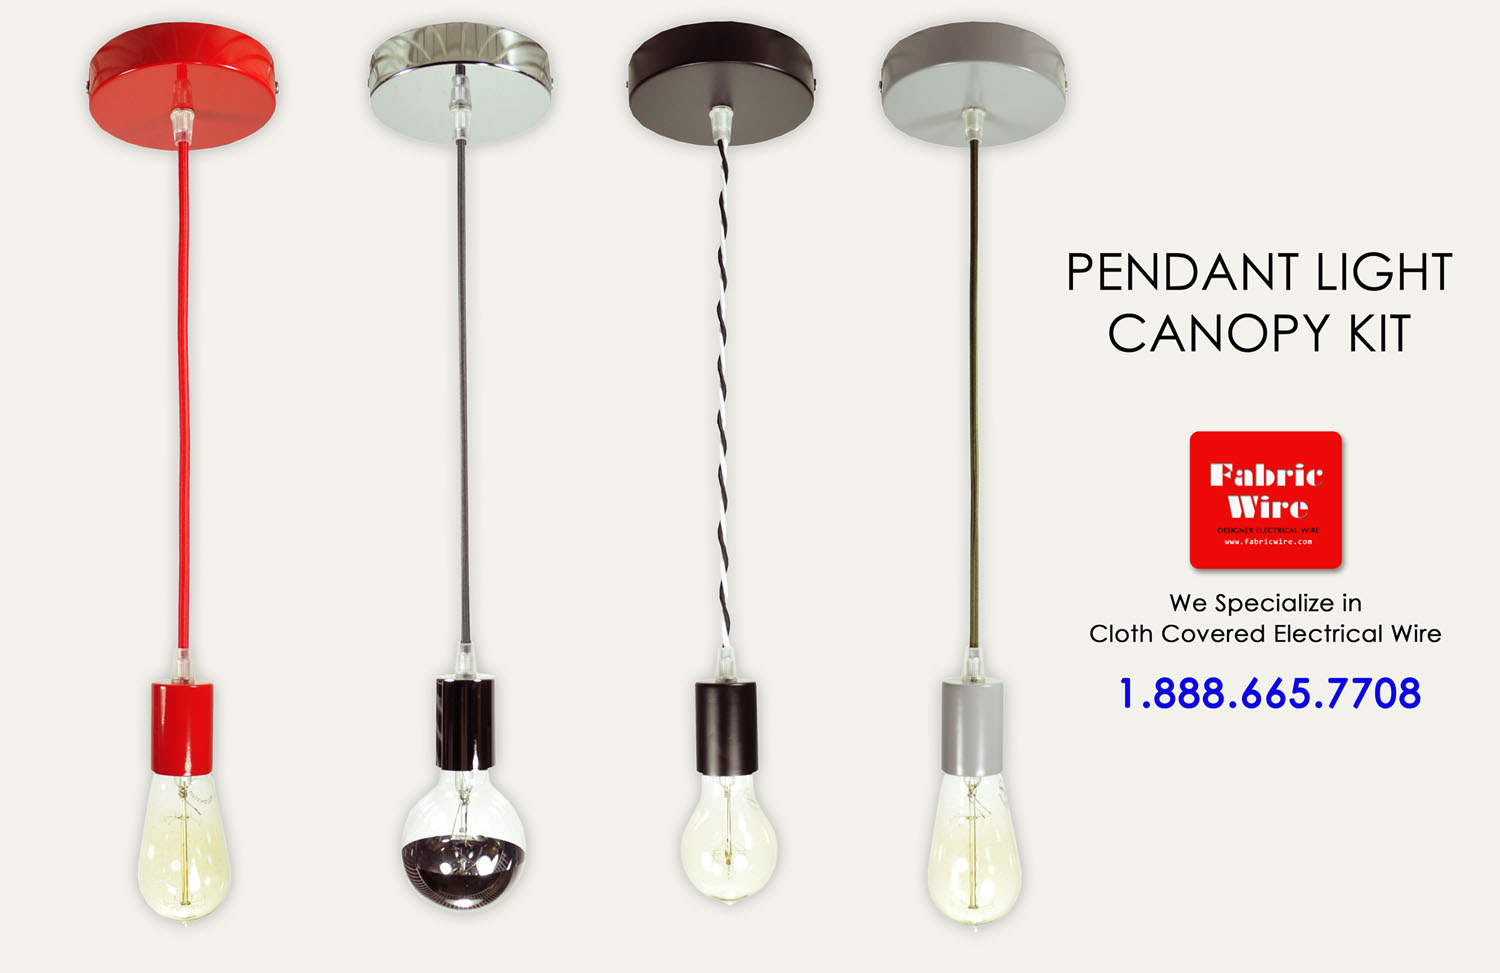 Pendant Light Kit With Switch : Lamp wiring kit free engine image for user manual